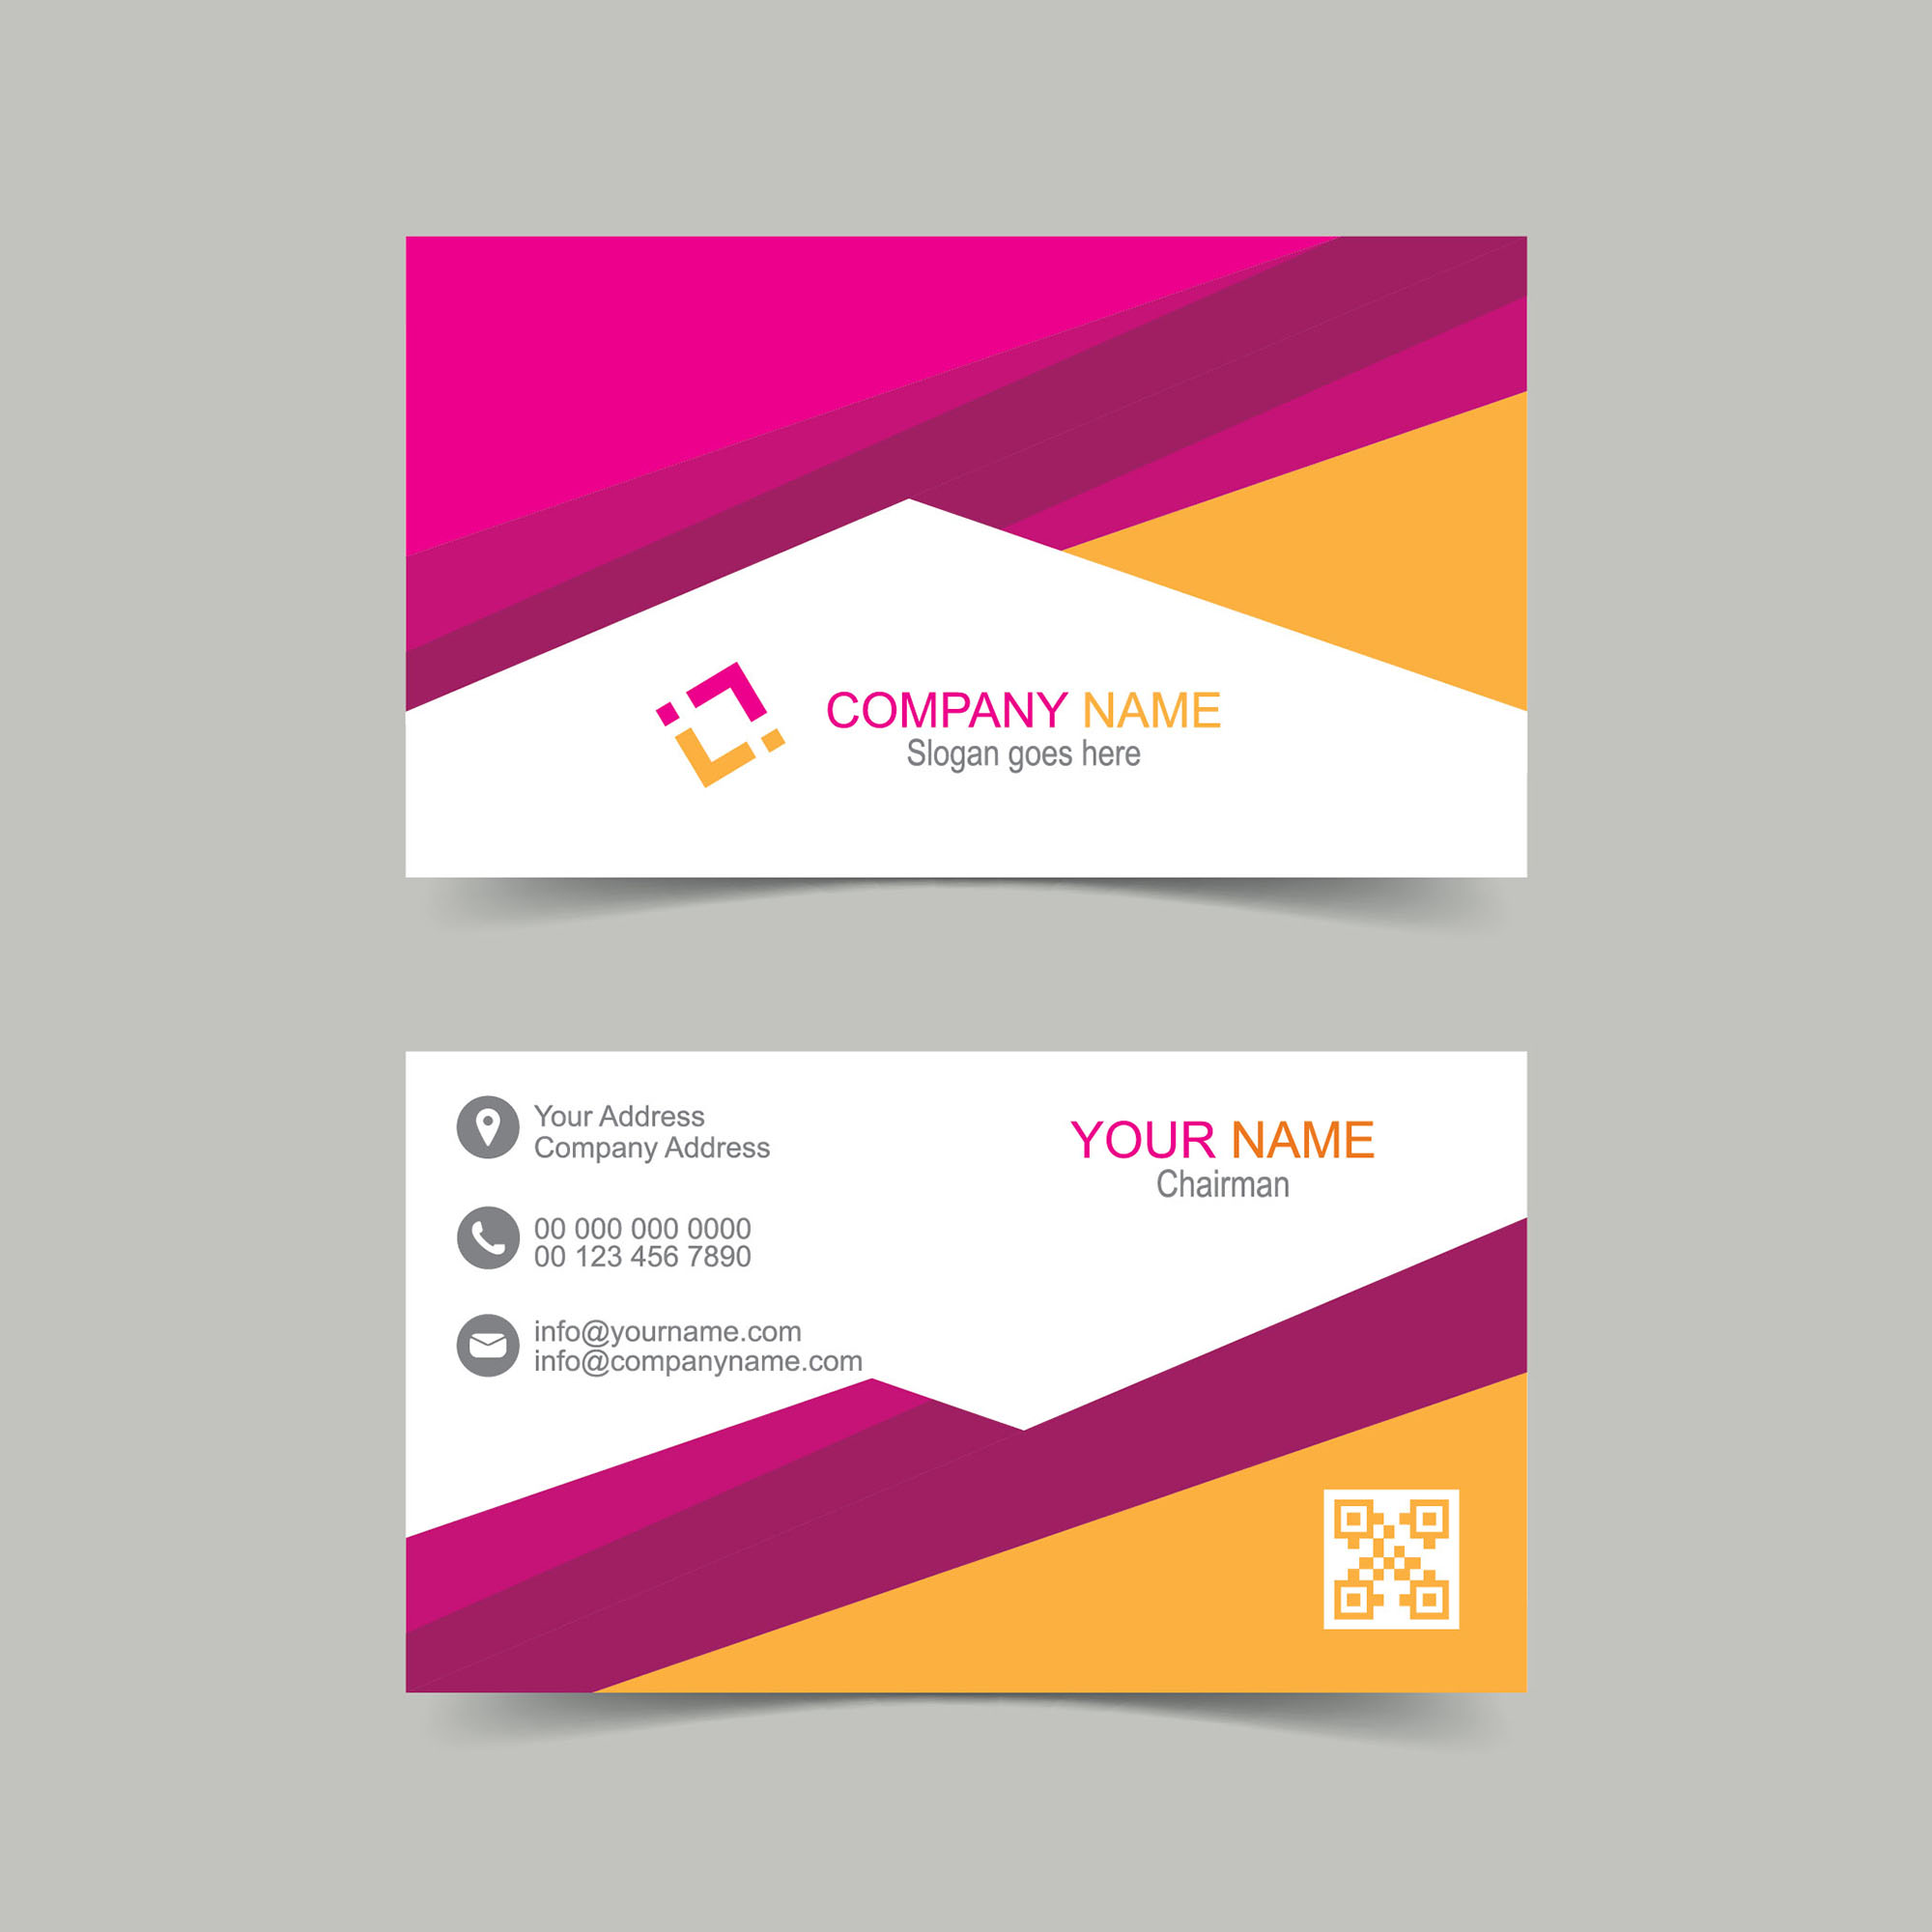 Vector business card design free download wisxi business card business cards business card design business card template design templates cheaphphosting Image collections